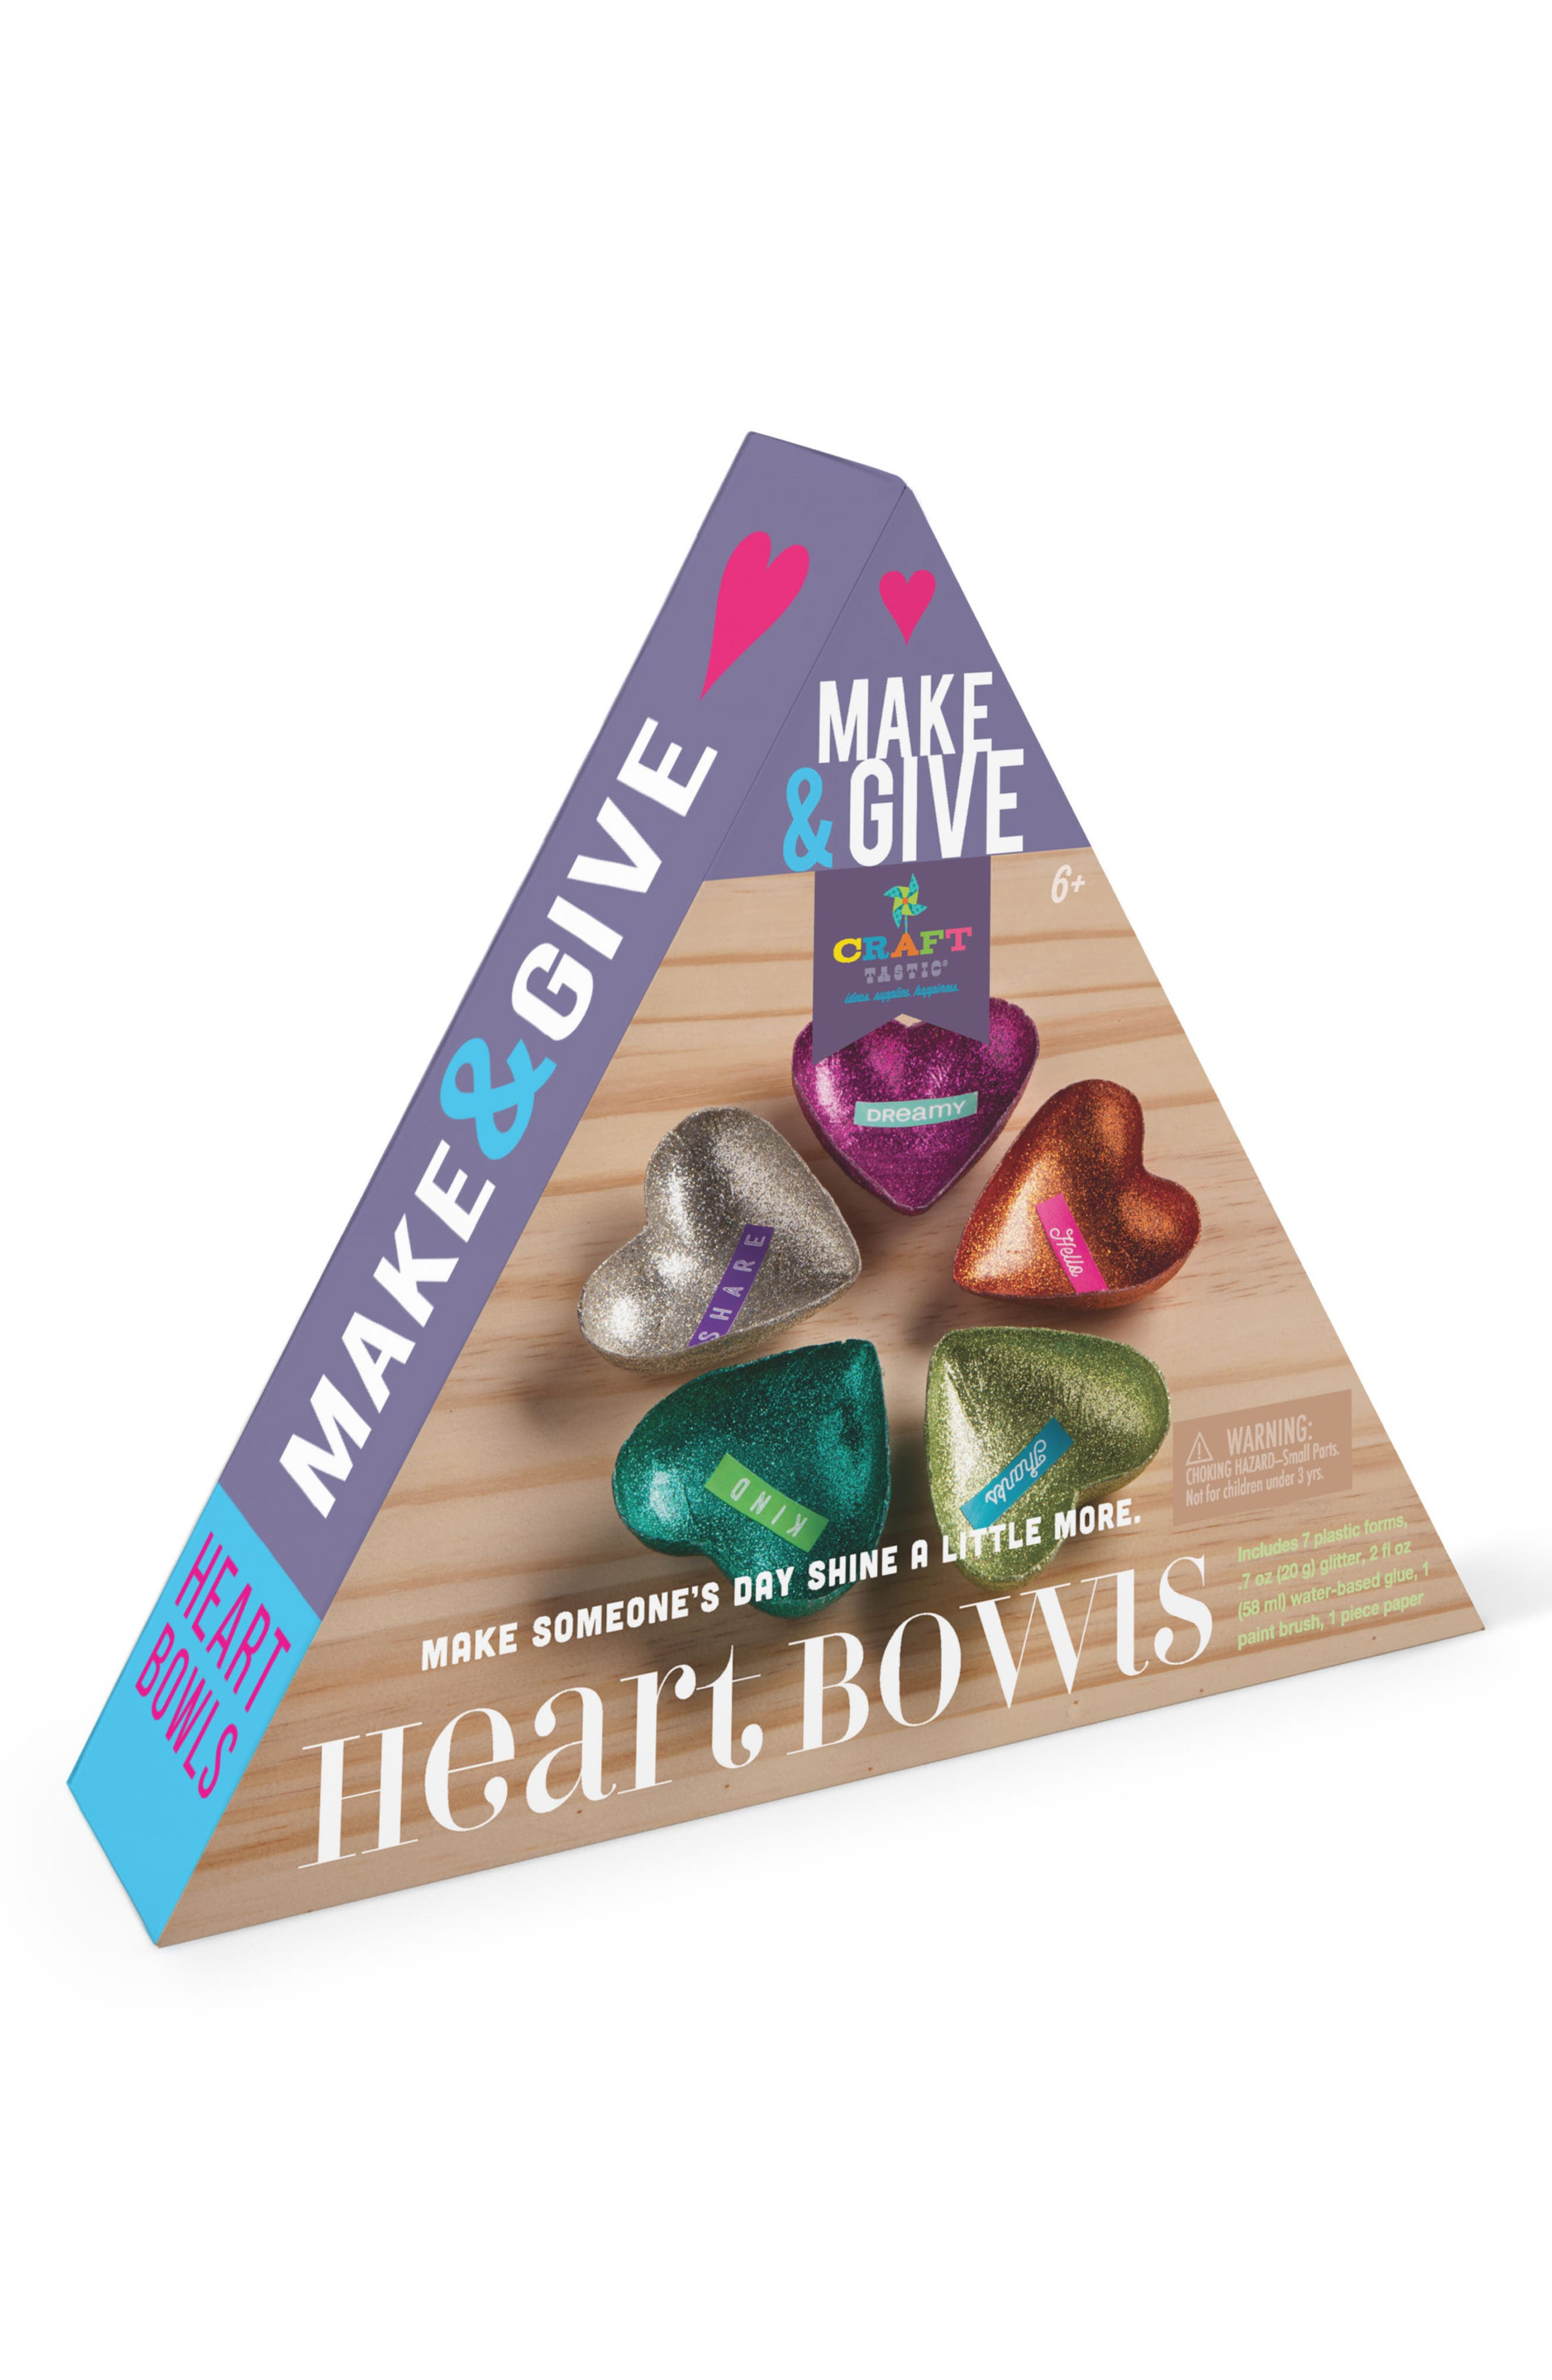 Main Image - Craft-tastic Make & Give Heart Bowls Craft Kit